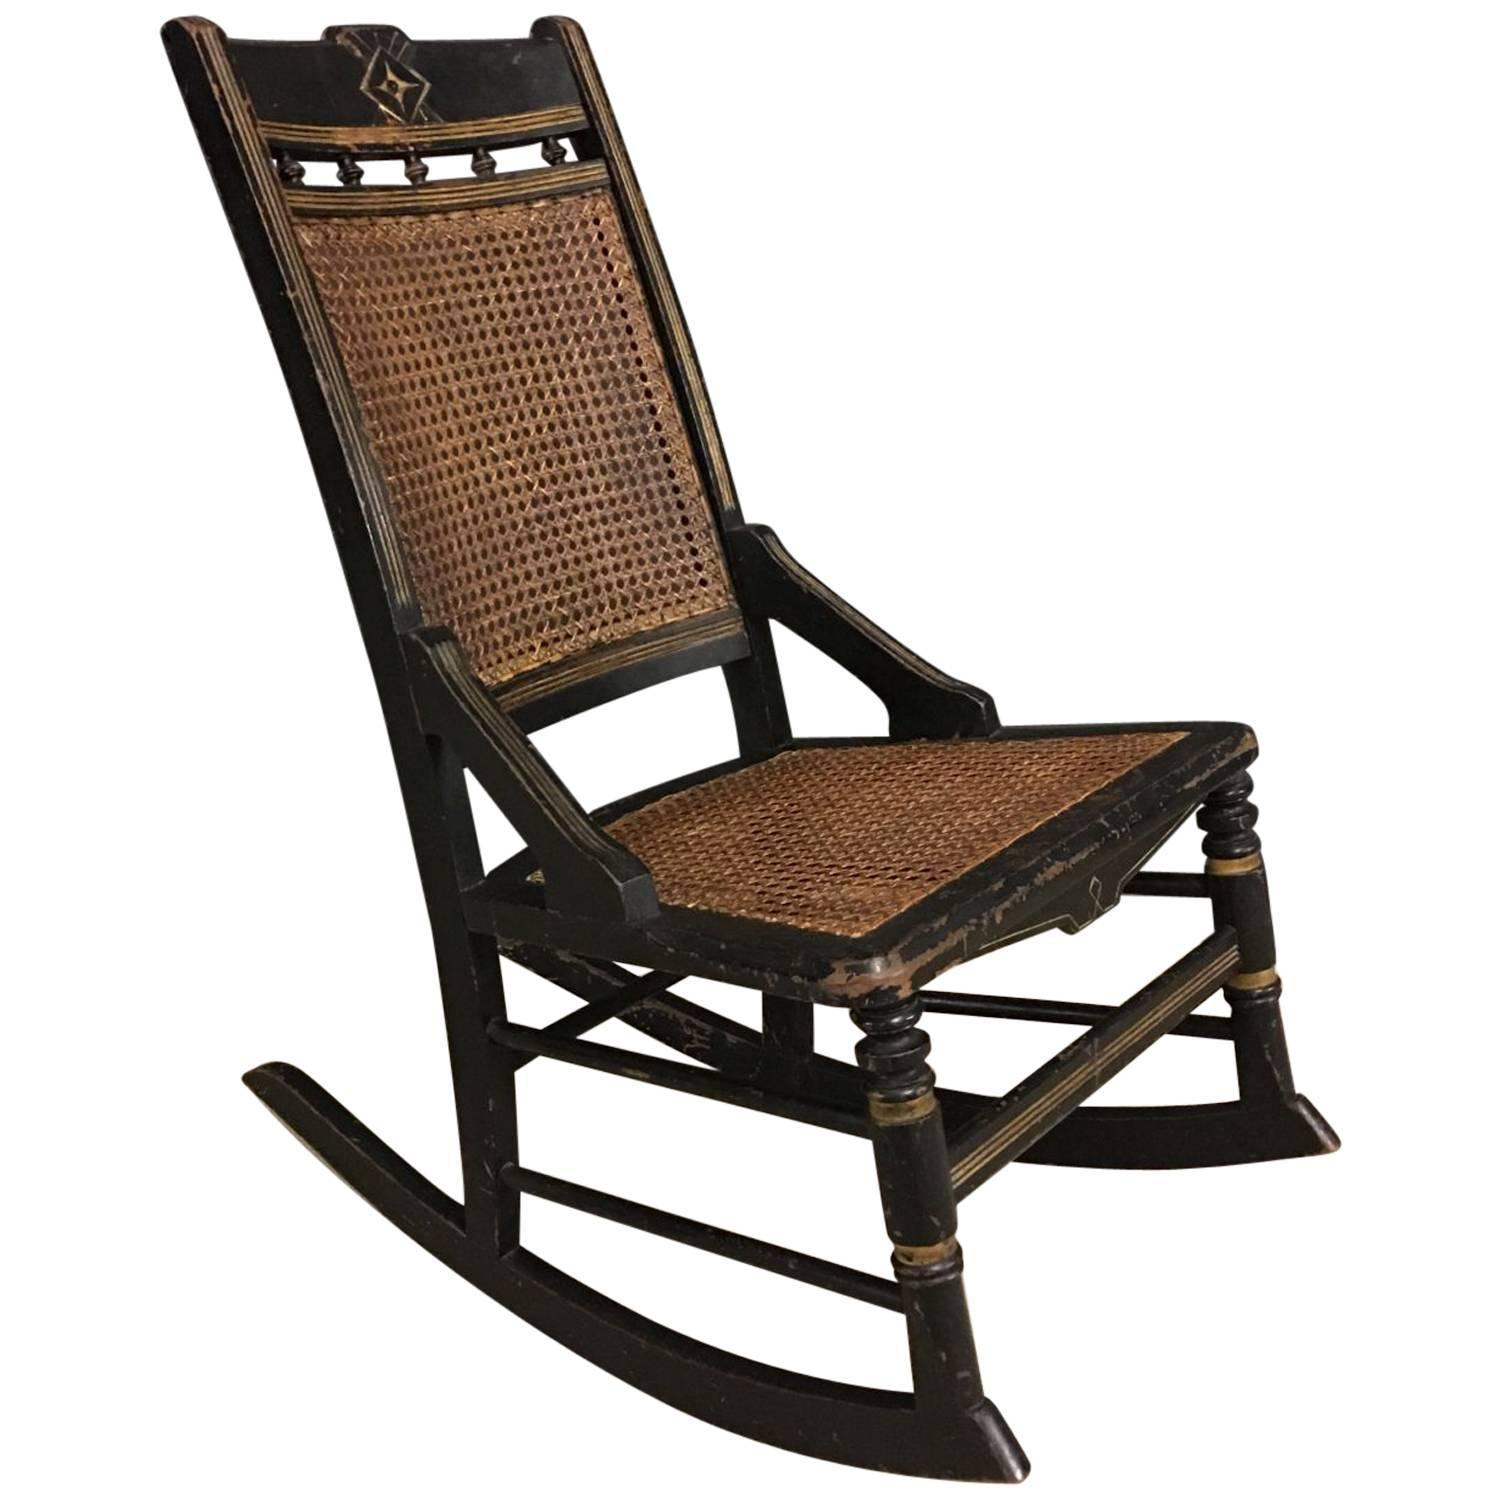 Antique French Napoleon III Rocking Chair, circa 1850s - 19th Century Rocking Chairs - 83 For Sale At 1stdibs